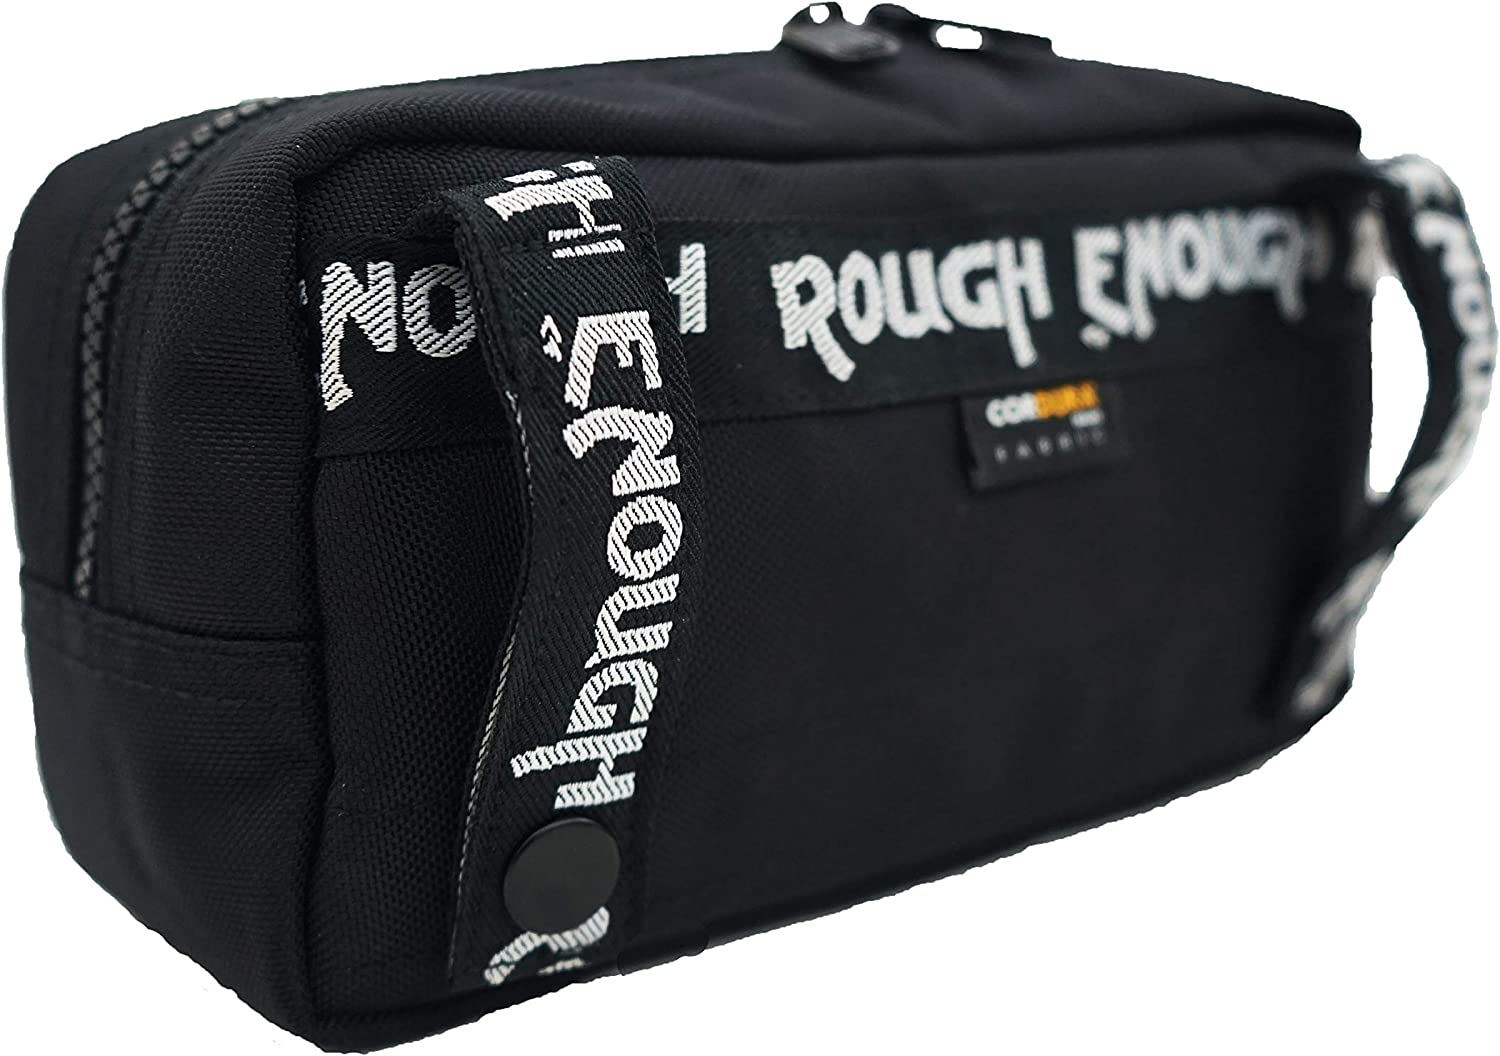 Rough Enough Black Small Multi Tool Bag Pouch Storage Organiser for Mens Teens Boys Bike Tool Kit Outdoor Travel Trip with Zip Pulls Button Belt Clip in Portable Cordura Polyester Fashion